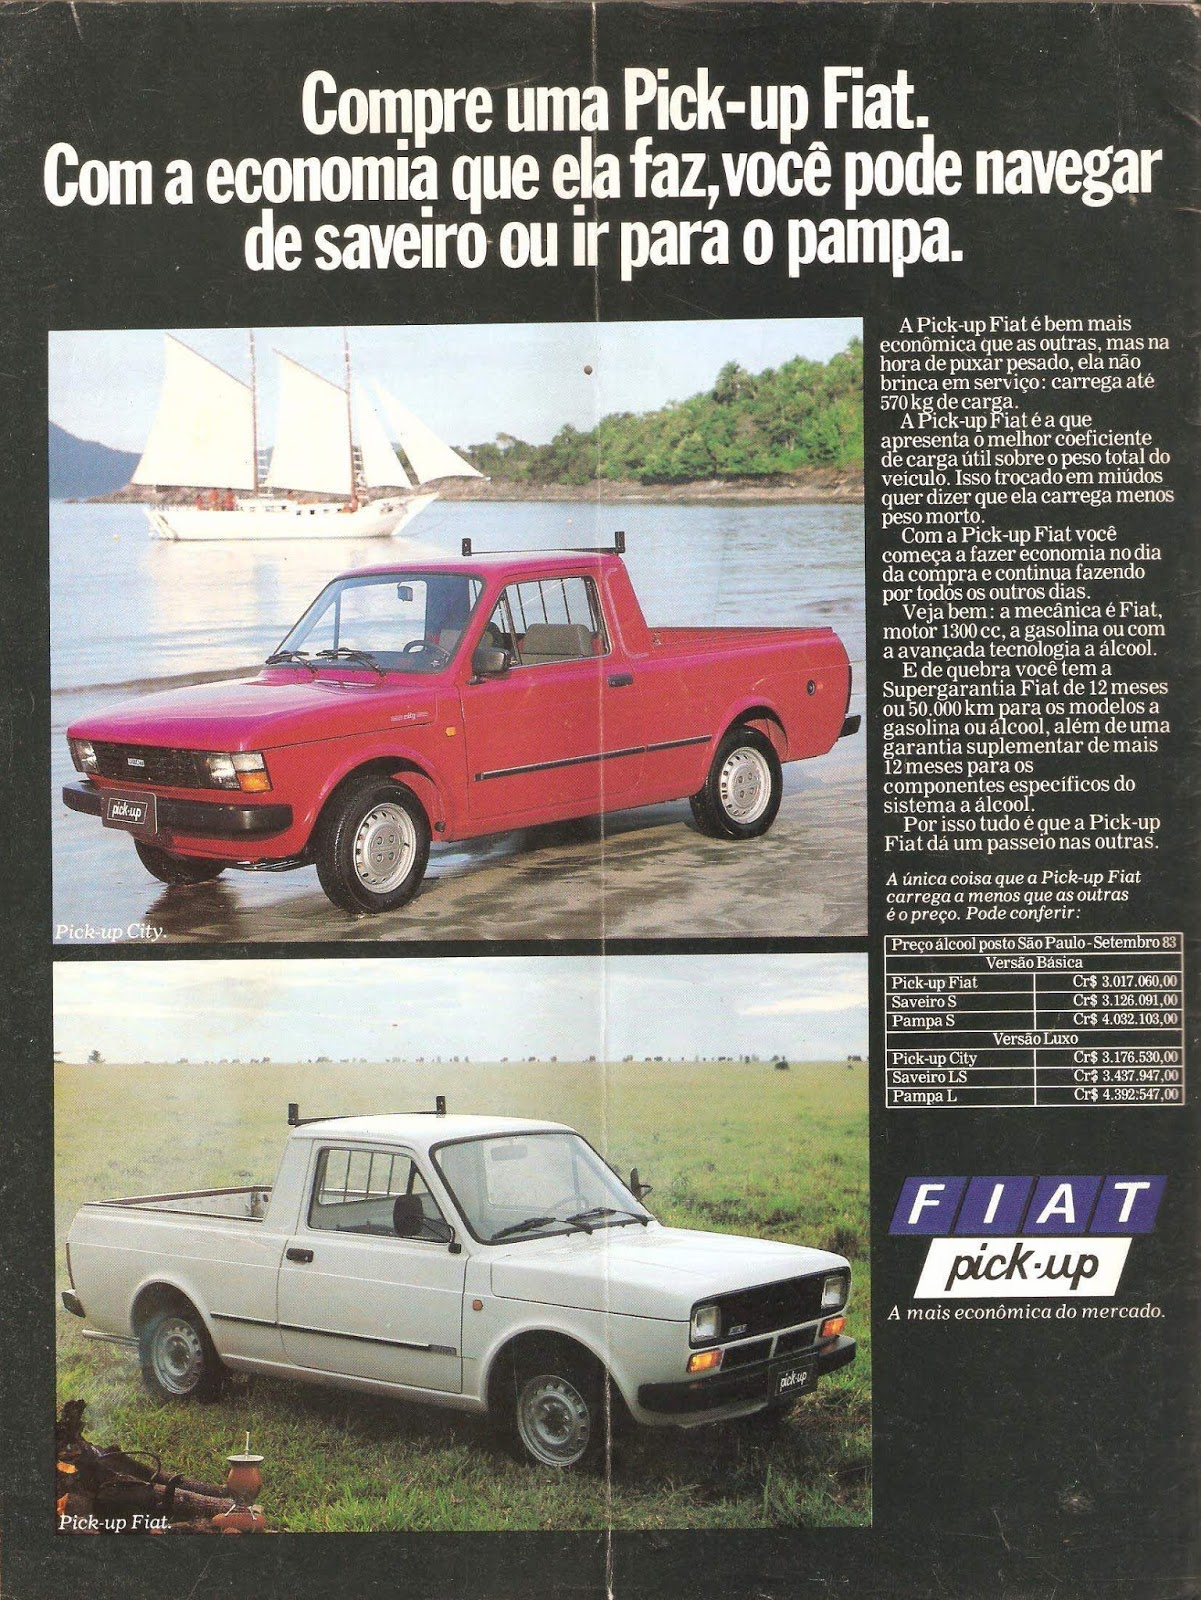 Propaganda de 1984 da Fiat enaltecendo as qualidades da Picape City diante as concorrentes